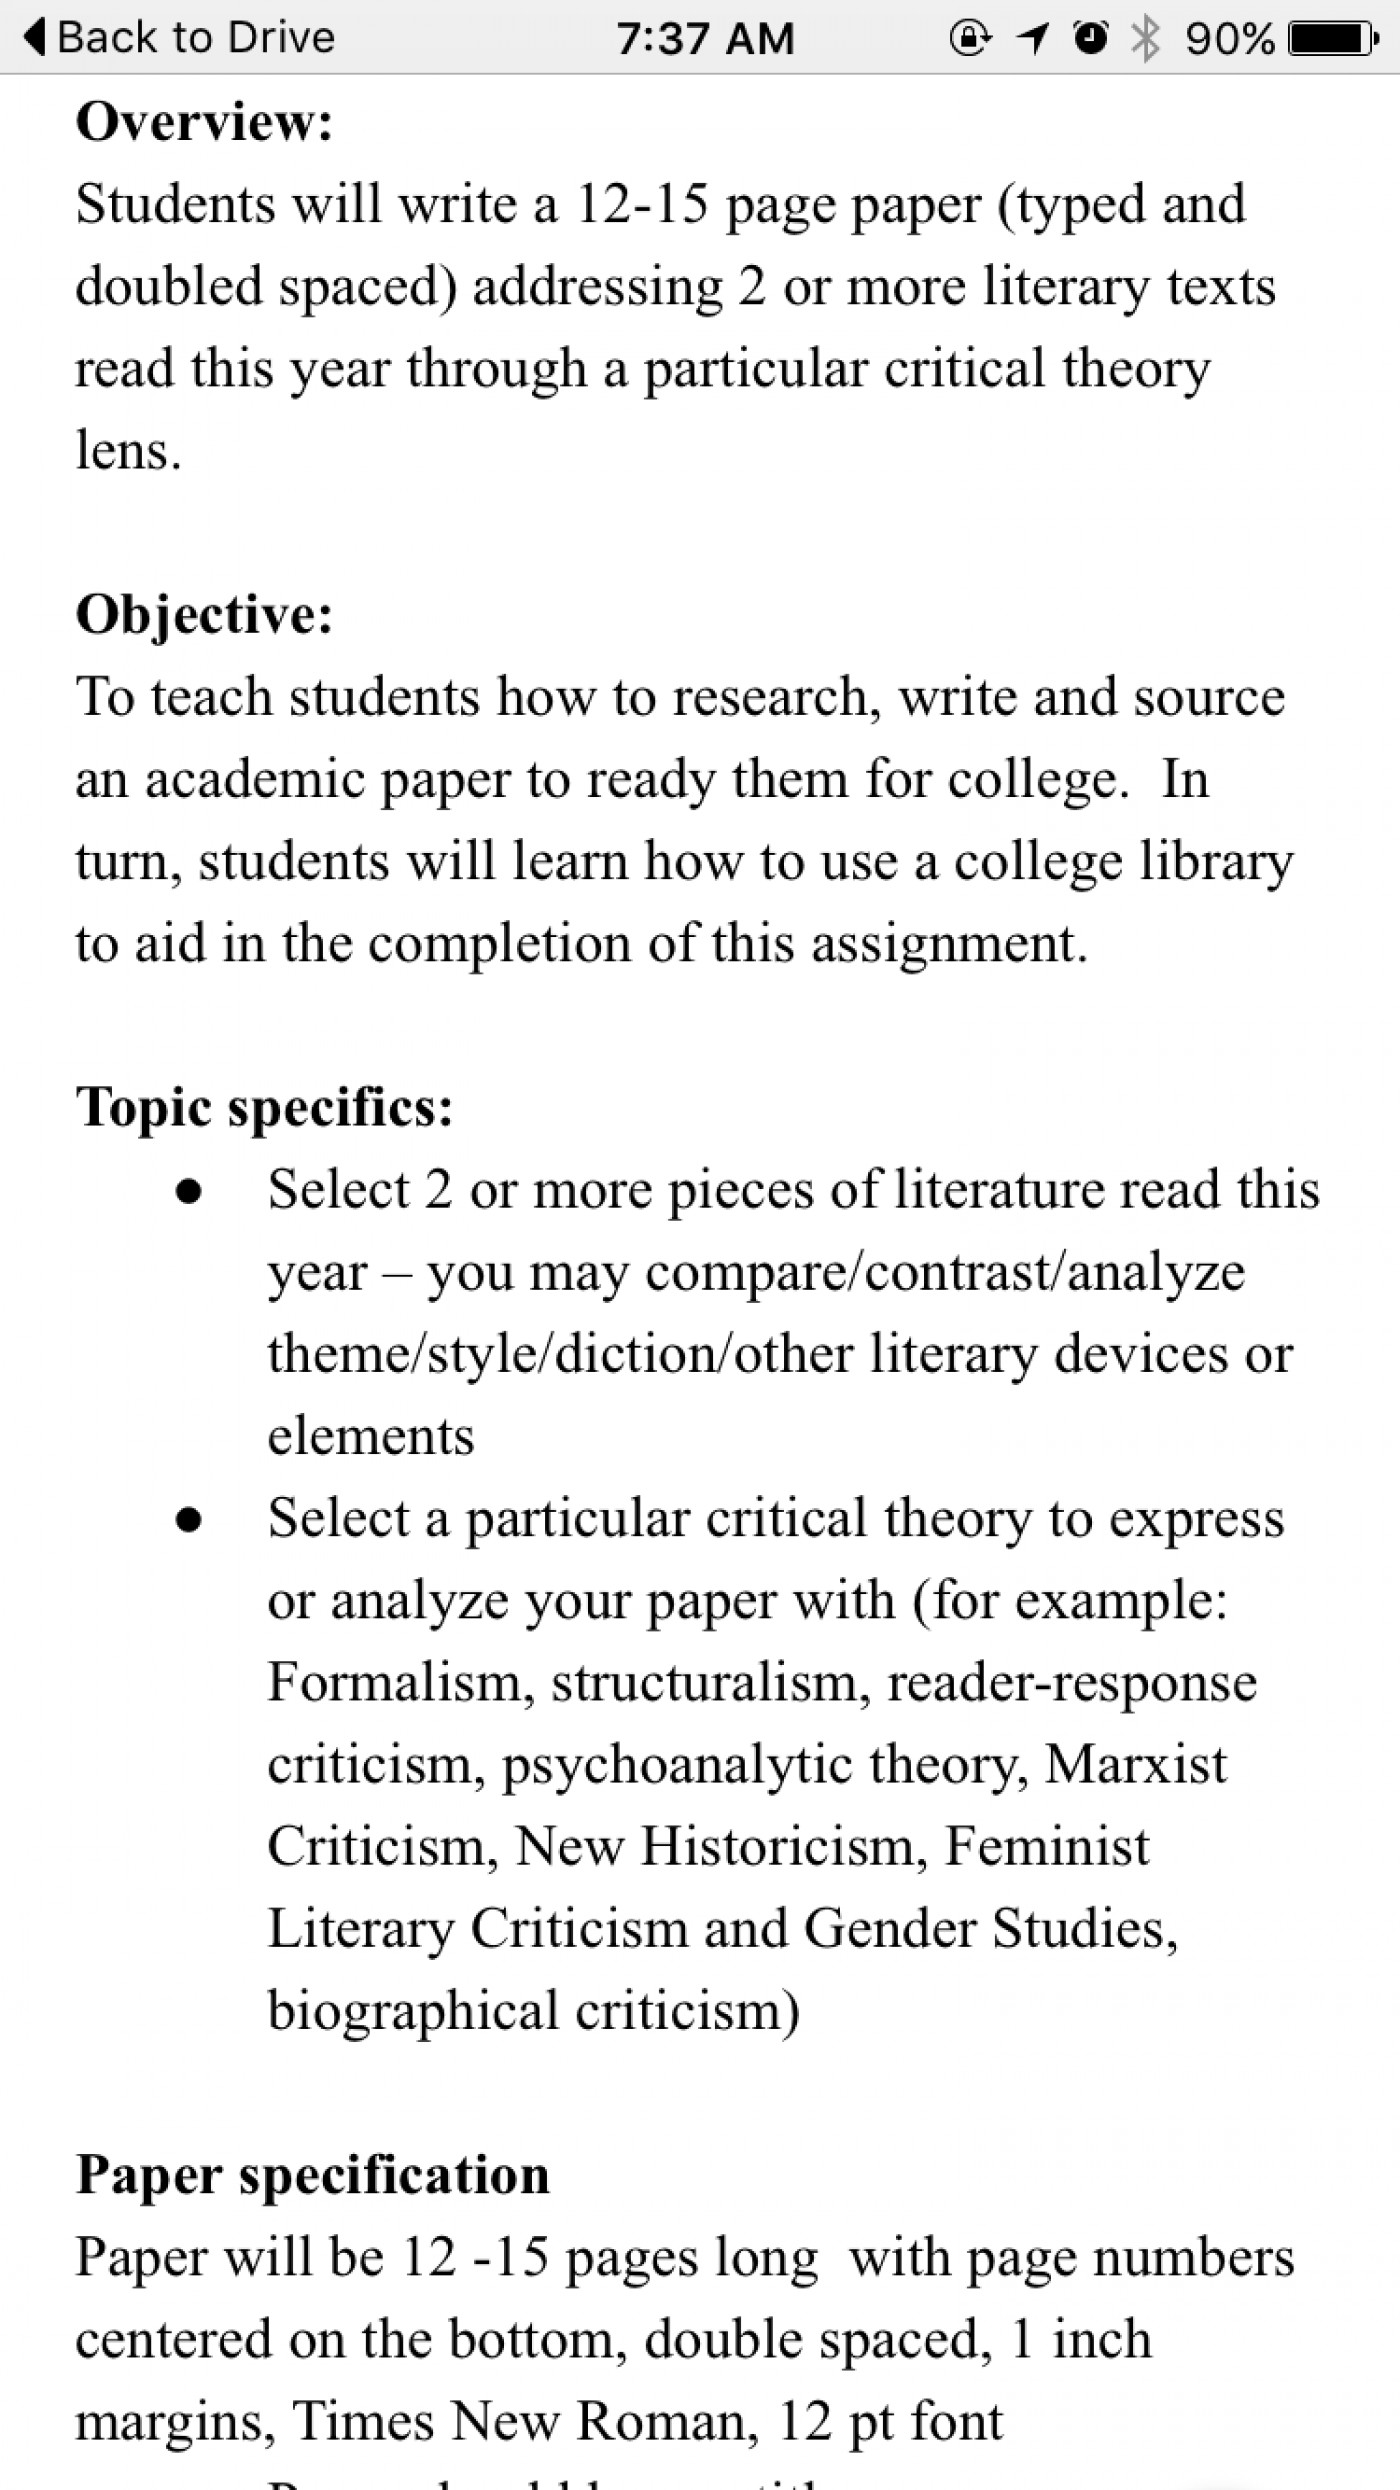 010 College Education Research Paper Topics Research20paper20image Singular 1400